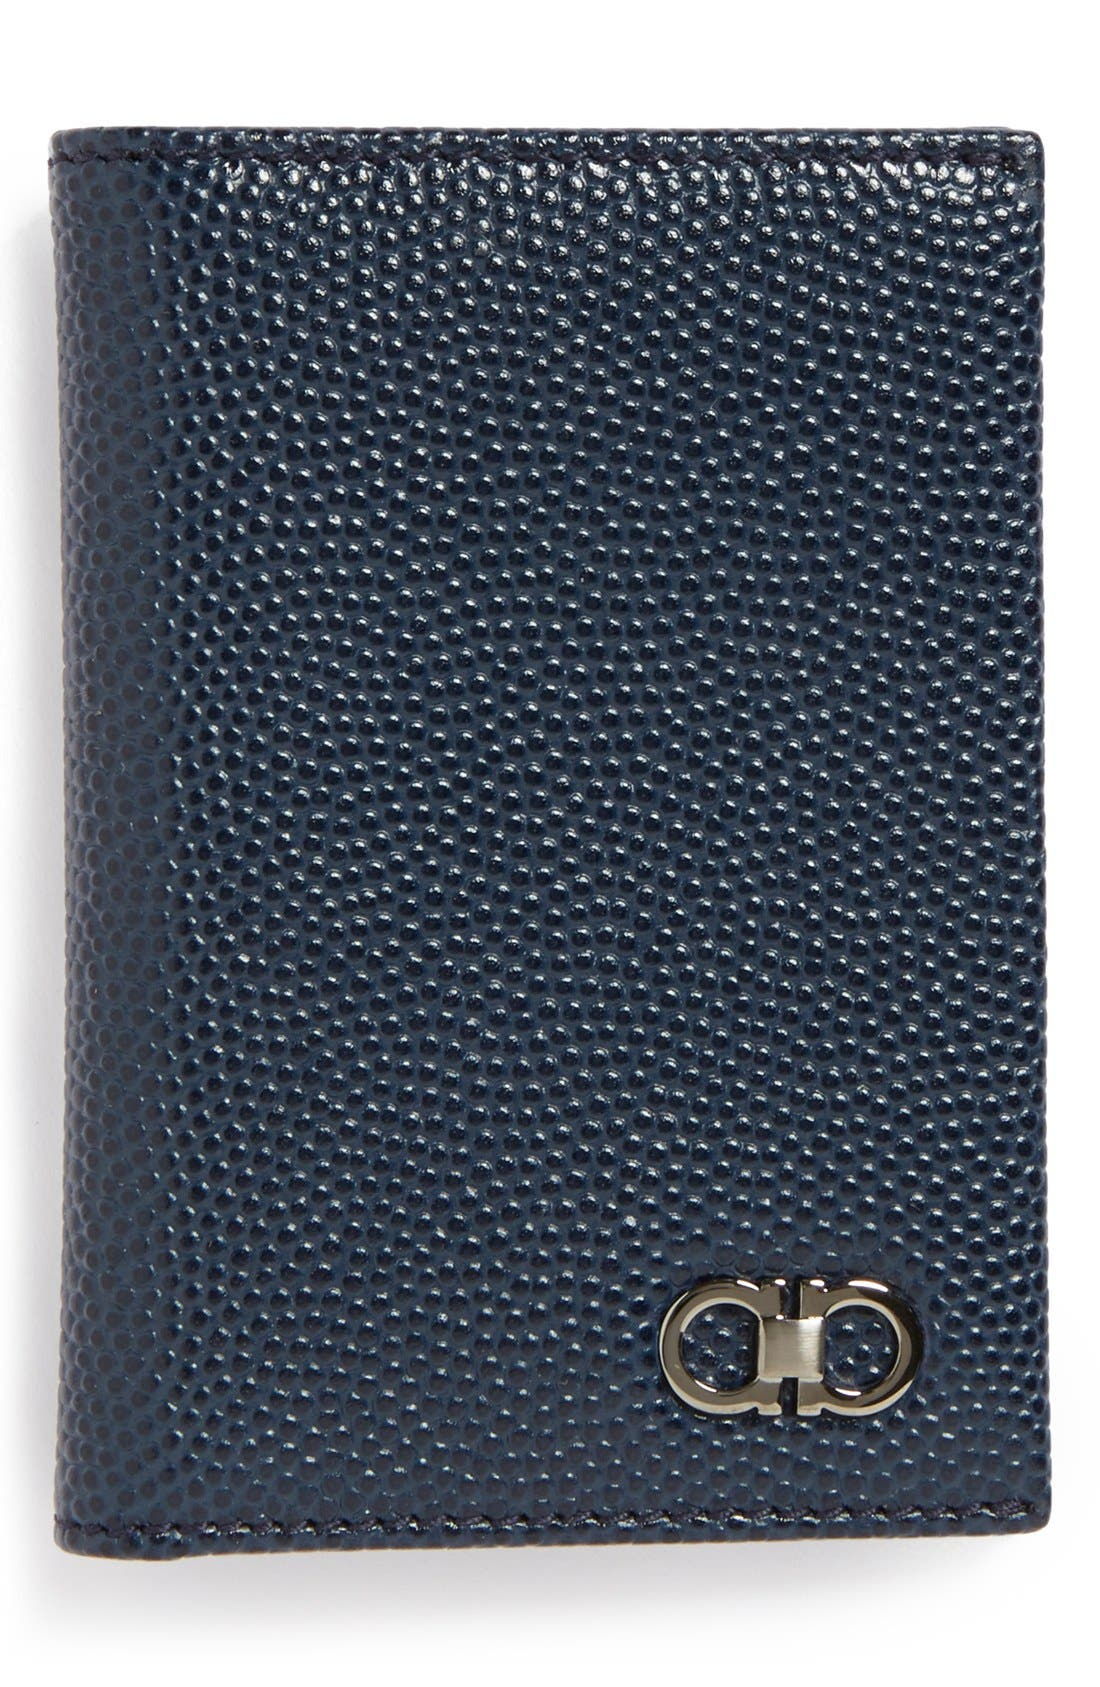 Main Image - Salvatore Ferragamo 'Ten Forty One' Leather Card Case